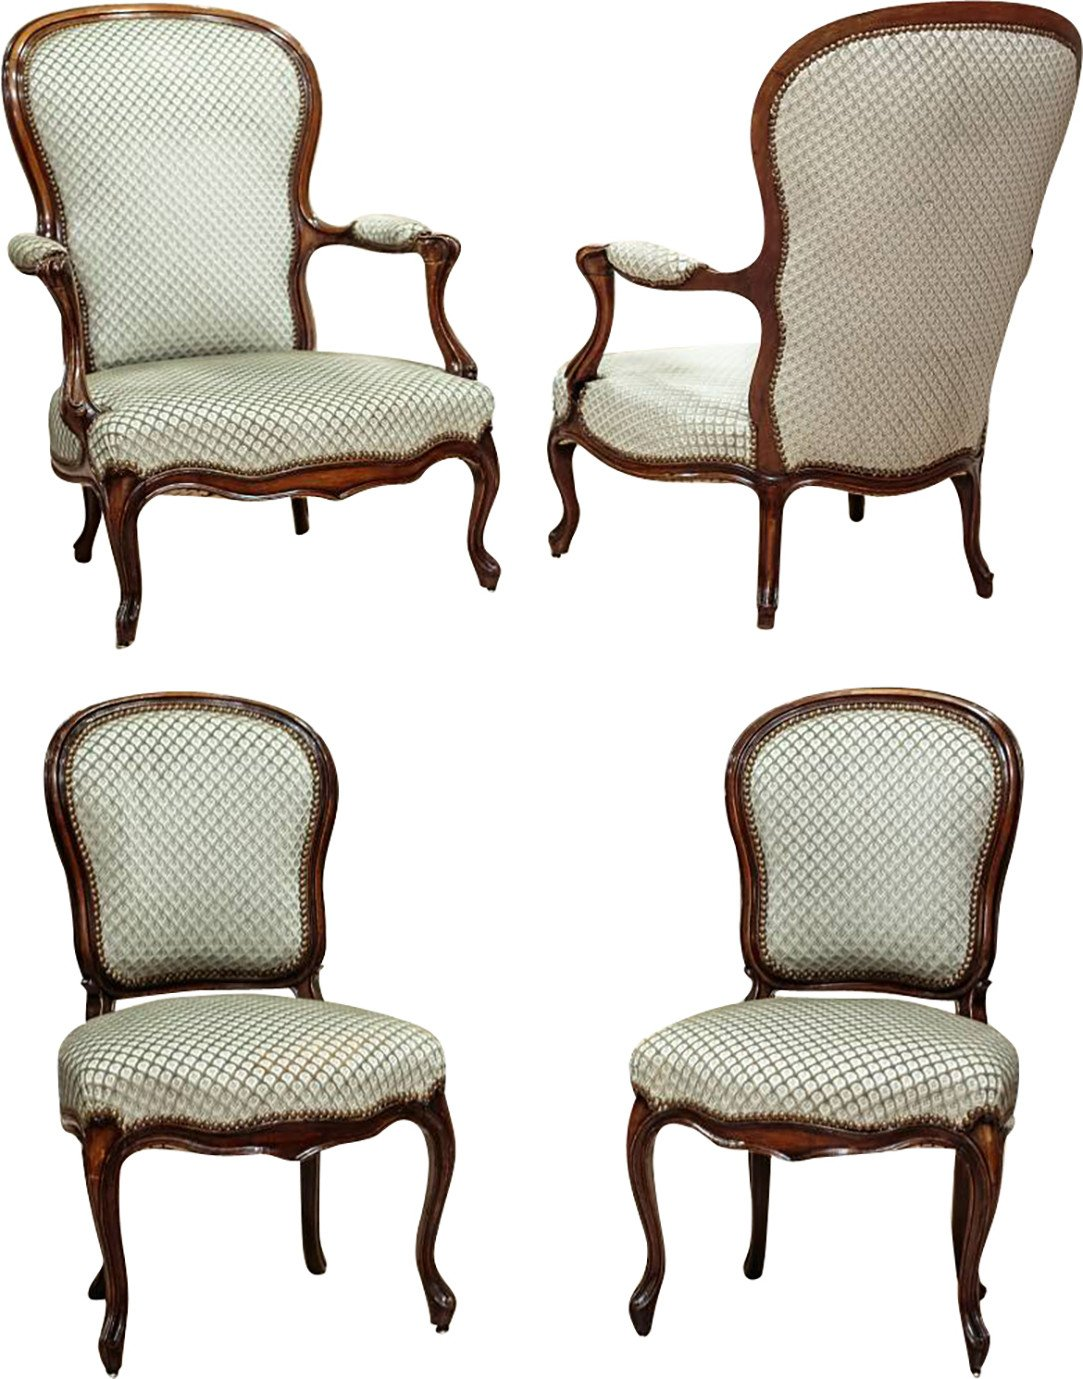 Pair of Armchairs and Pair of Chairs, end of 19th C.